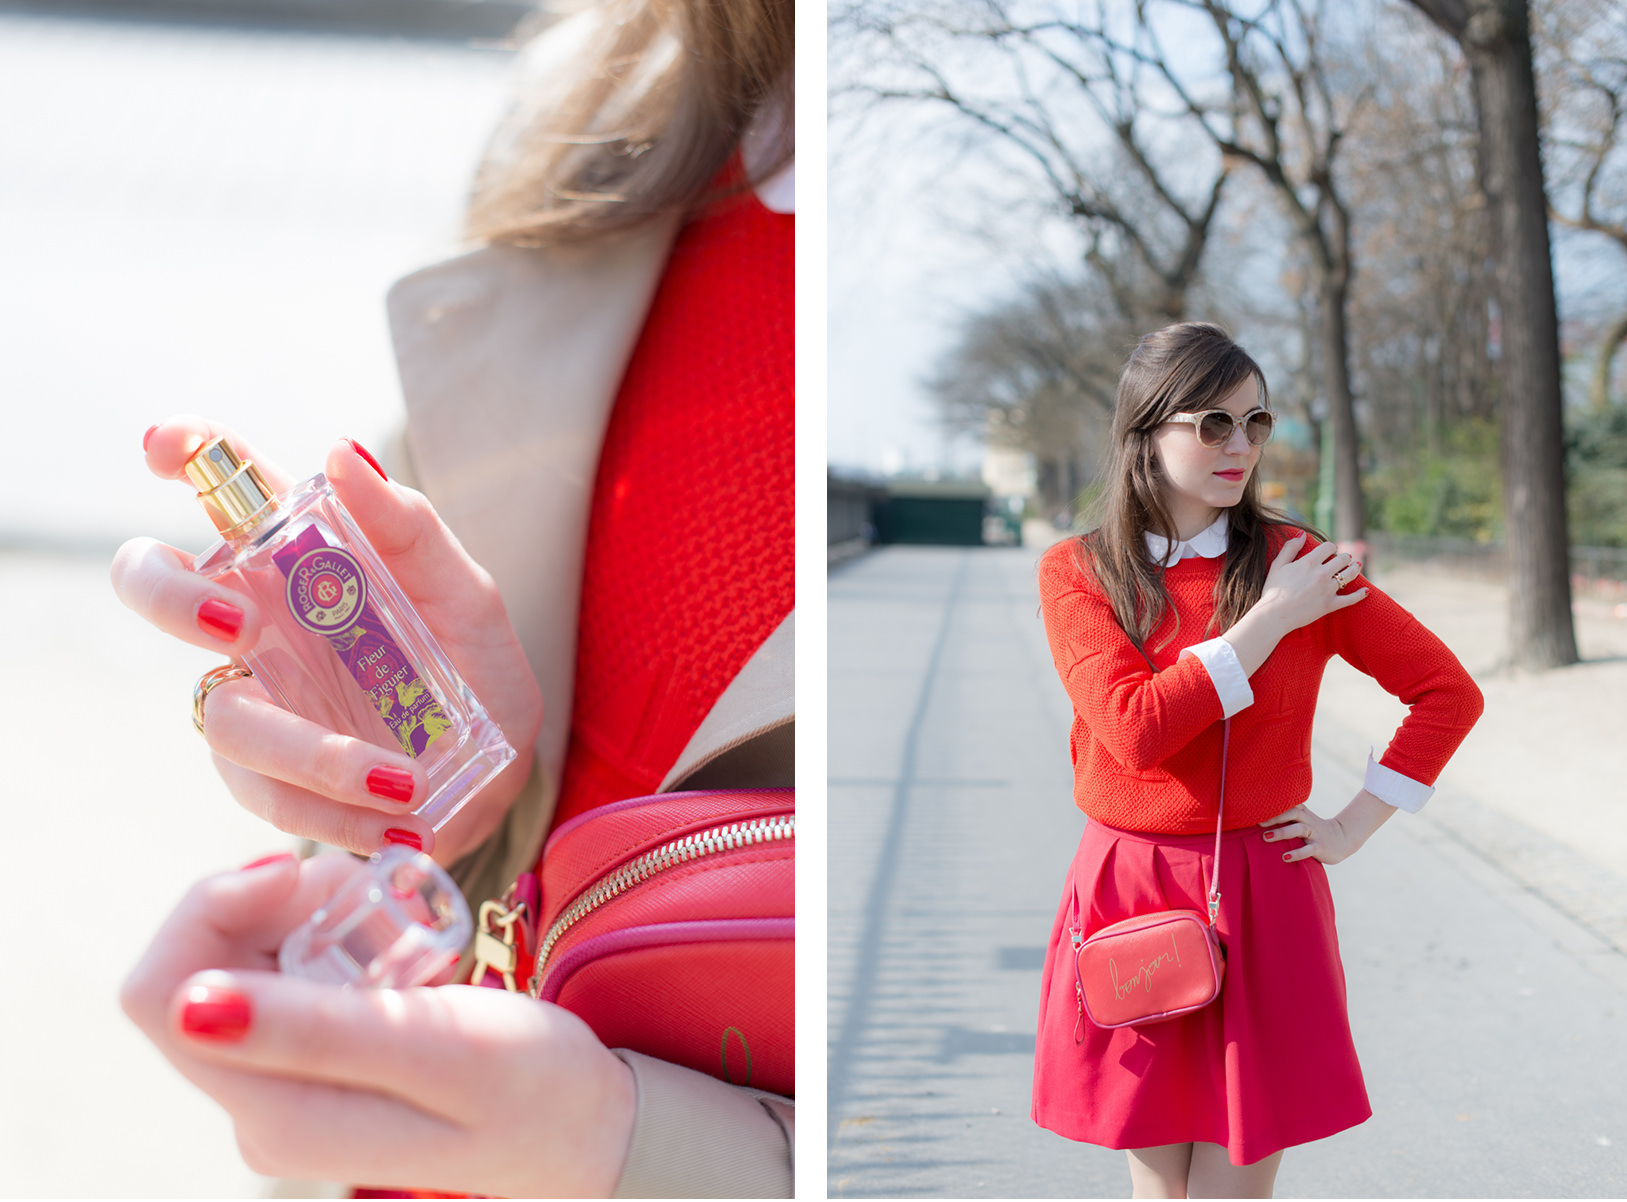 Blog Mode And The City - Fleur de FIguier Roger & Gallet